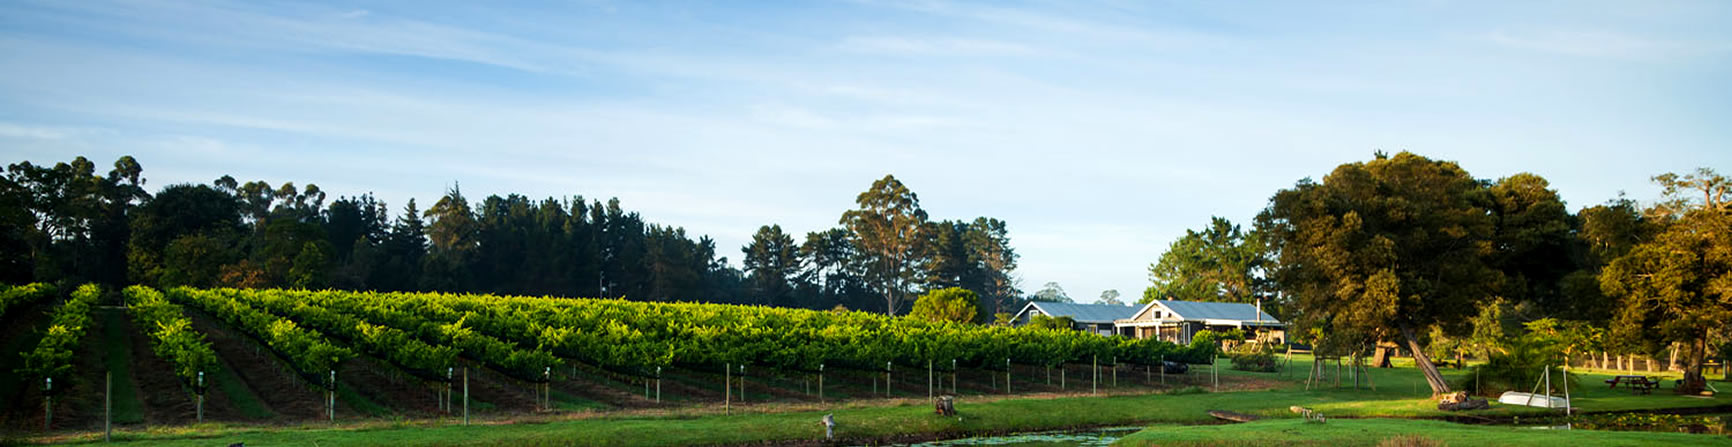 Plett Winelands wine farm